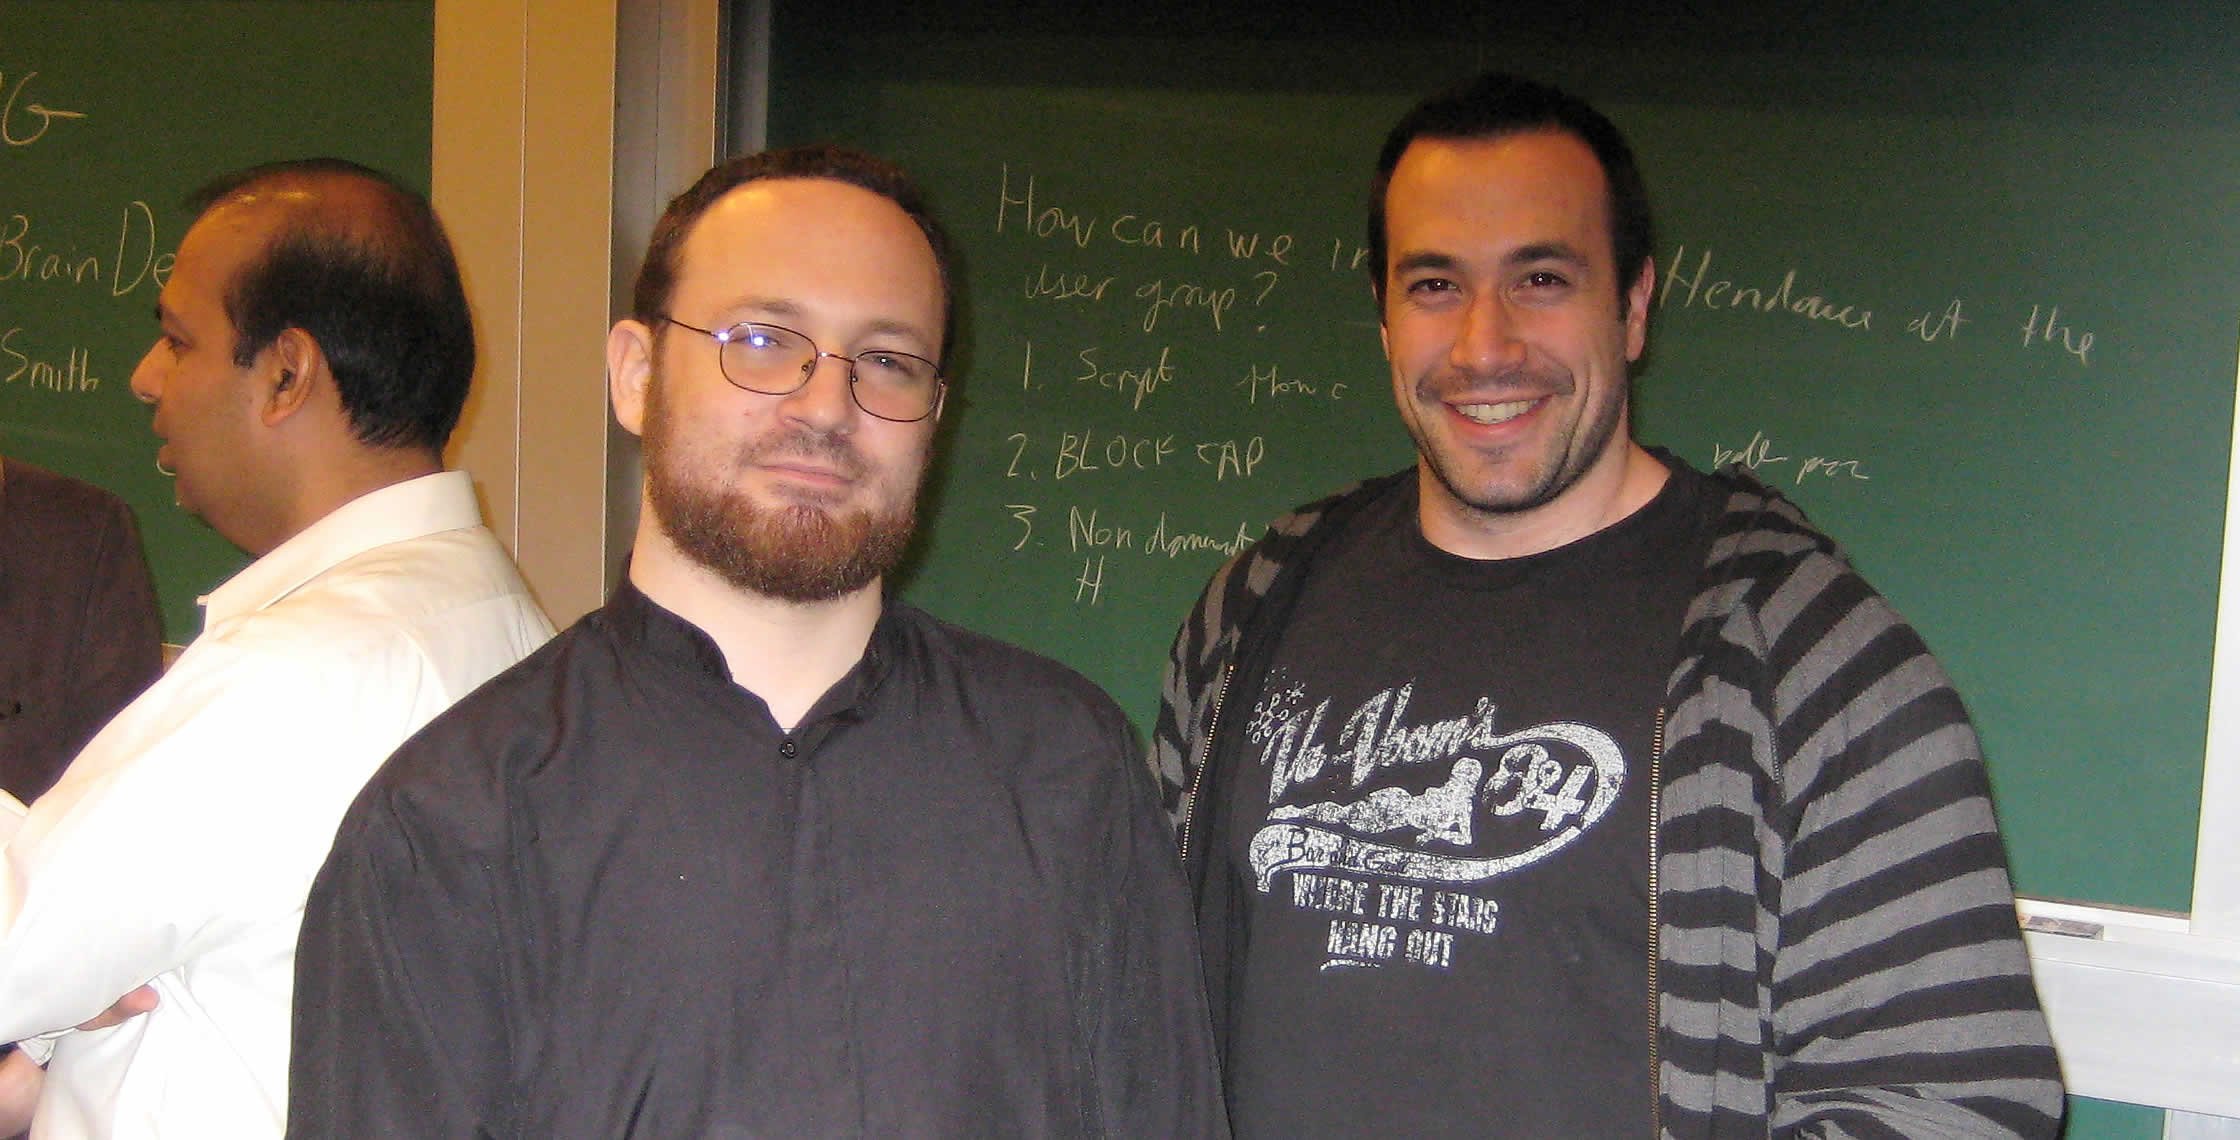 Ben Nadel at the New York ColdFusion User Group (May. 2008) with: Michael Dinowitz